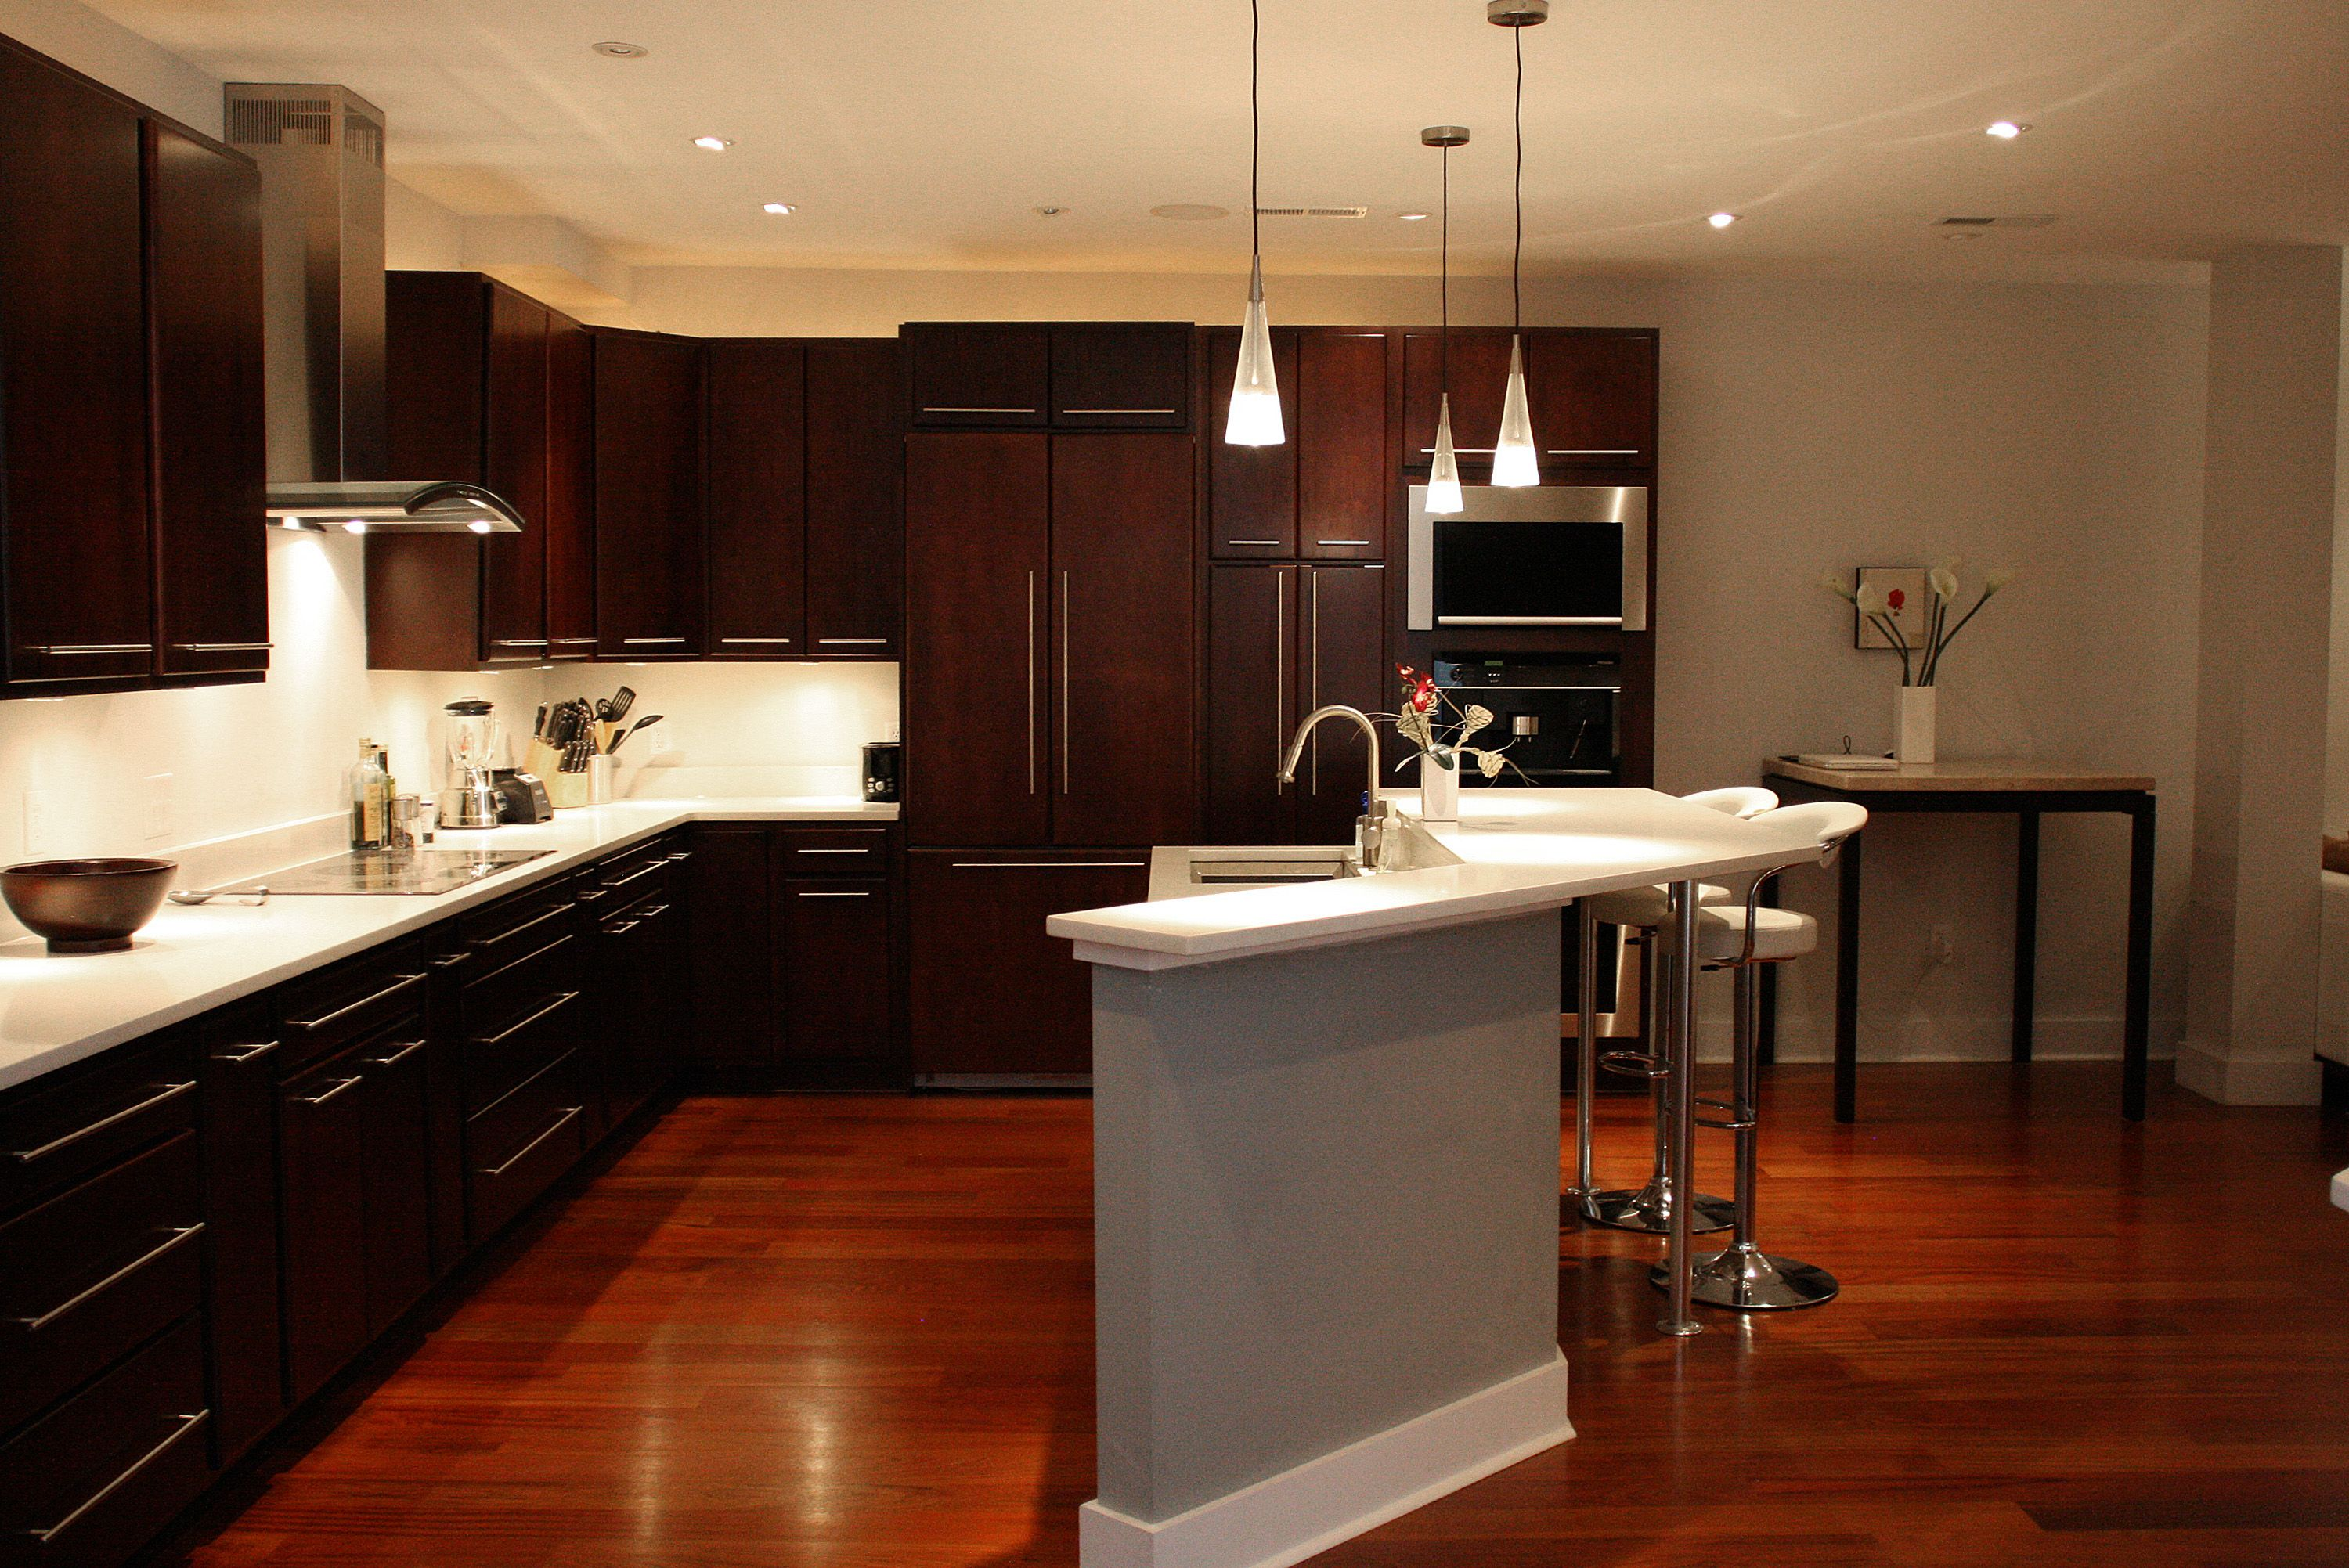 Hardwood Floors In The Kitchen Besf Of Ideas Stylish Flooring For Kitchen With Wooden Laminate